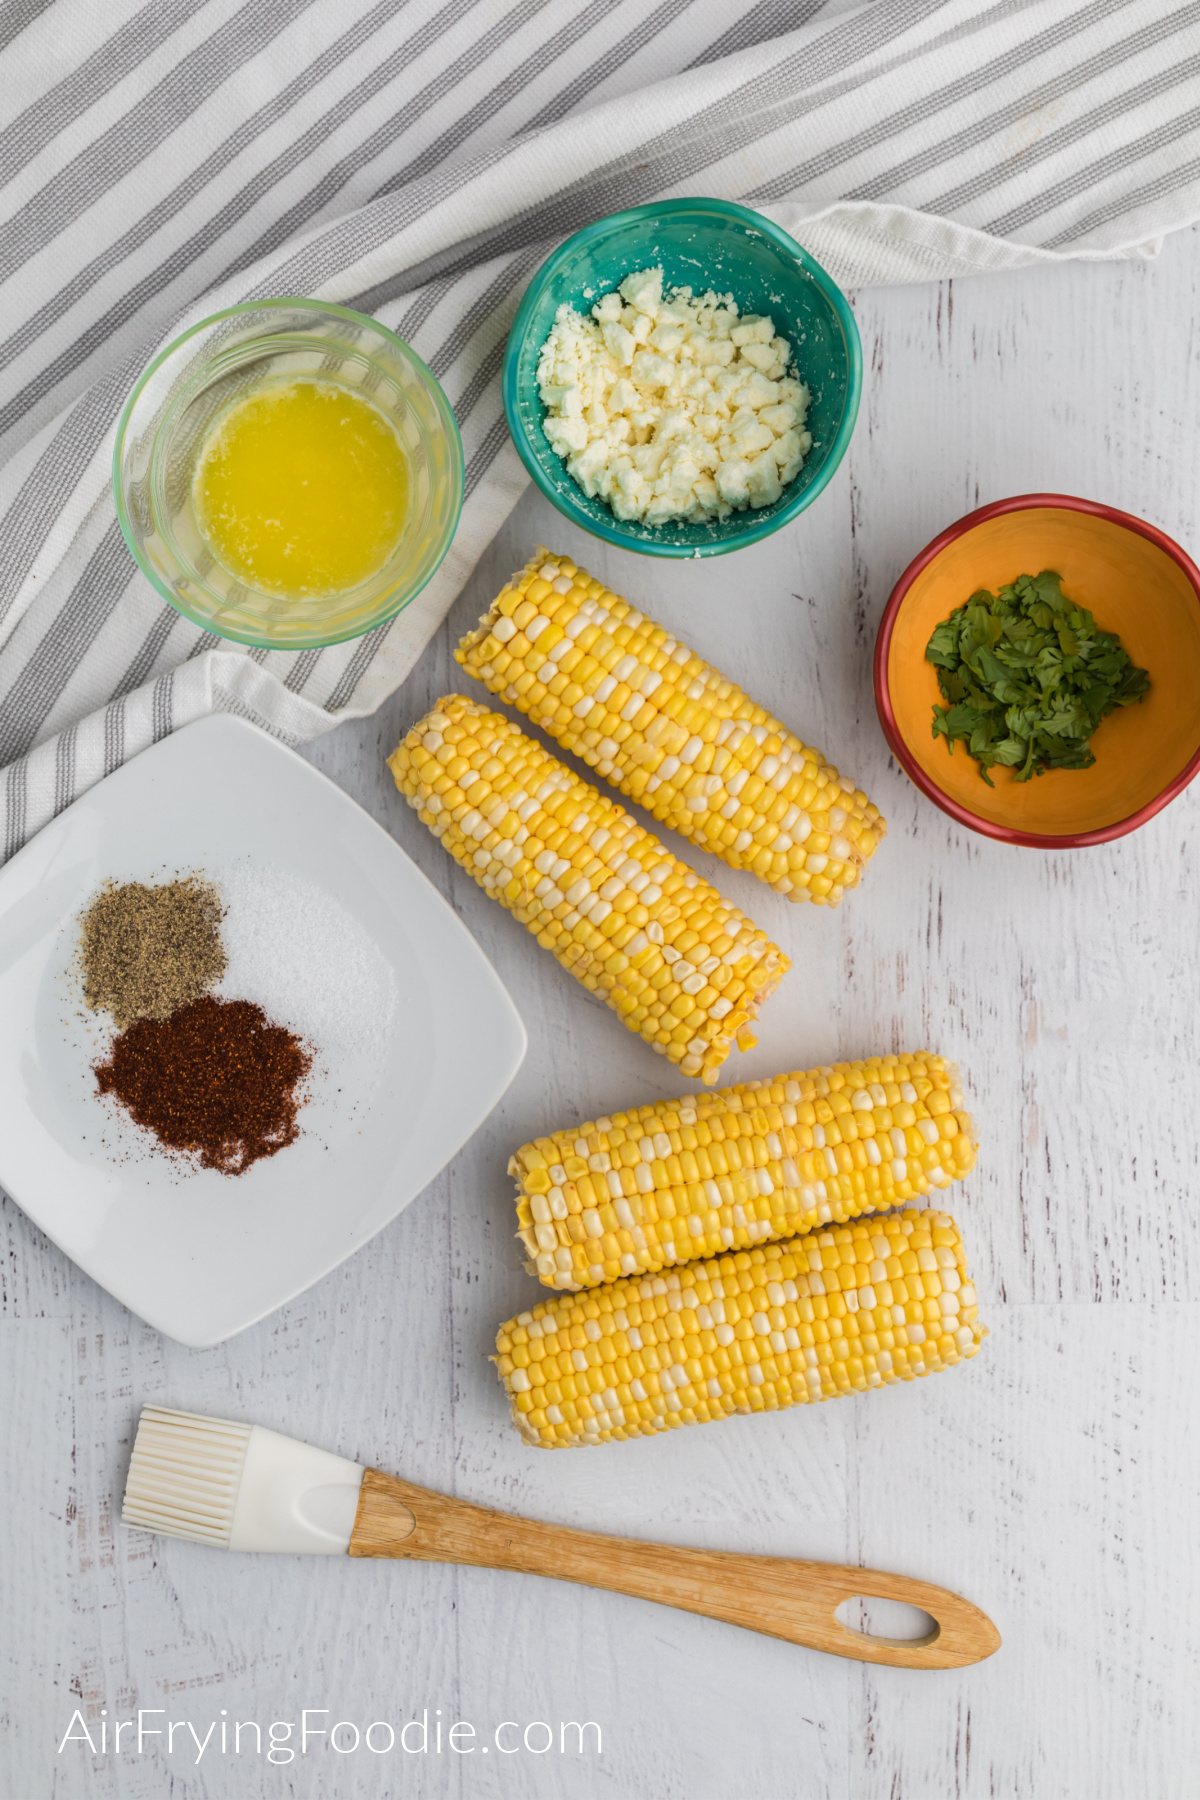 Ingredients needed to make mexican street corn in the air fryer.